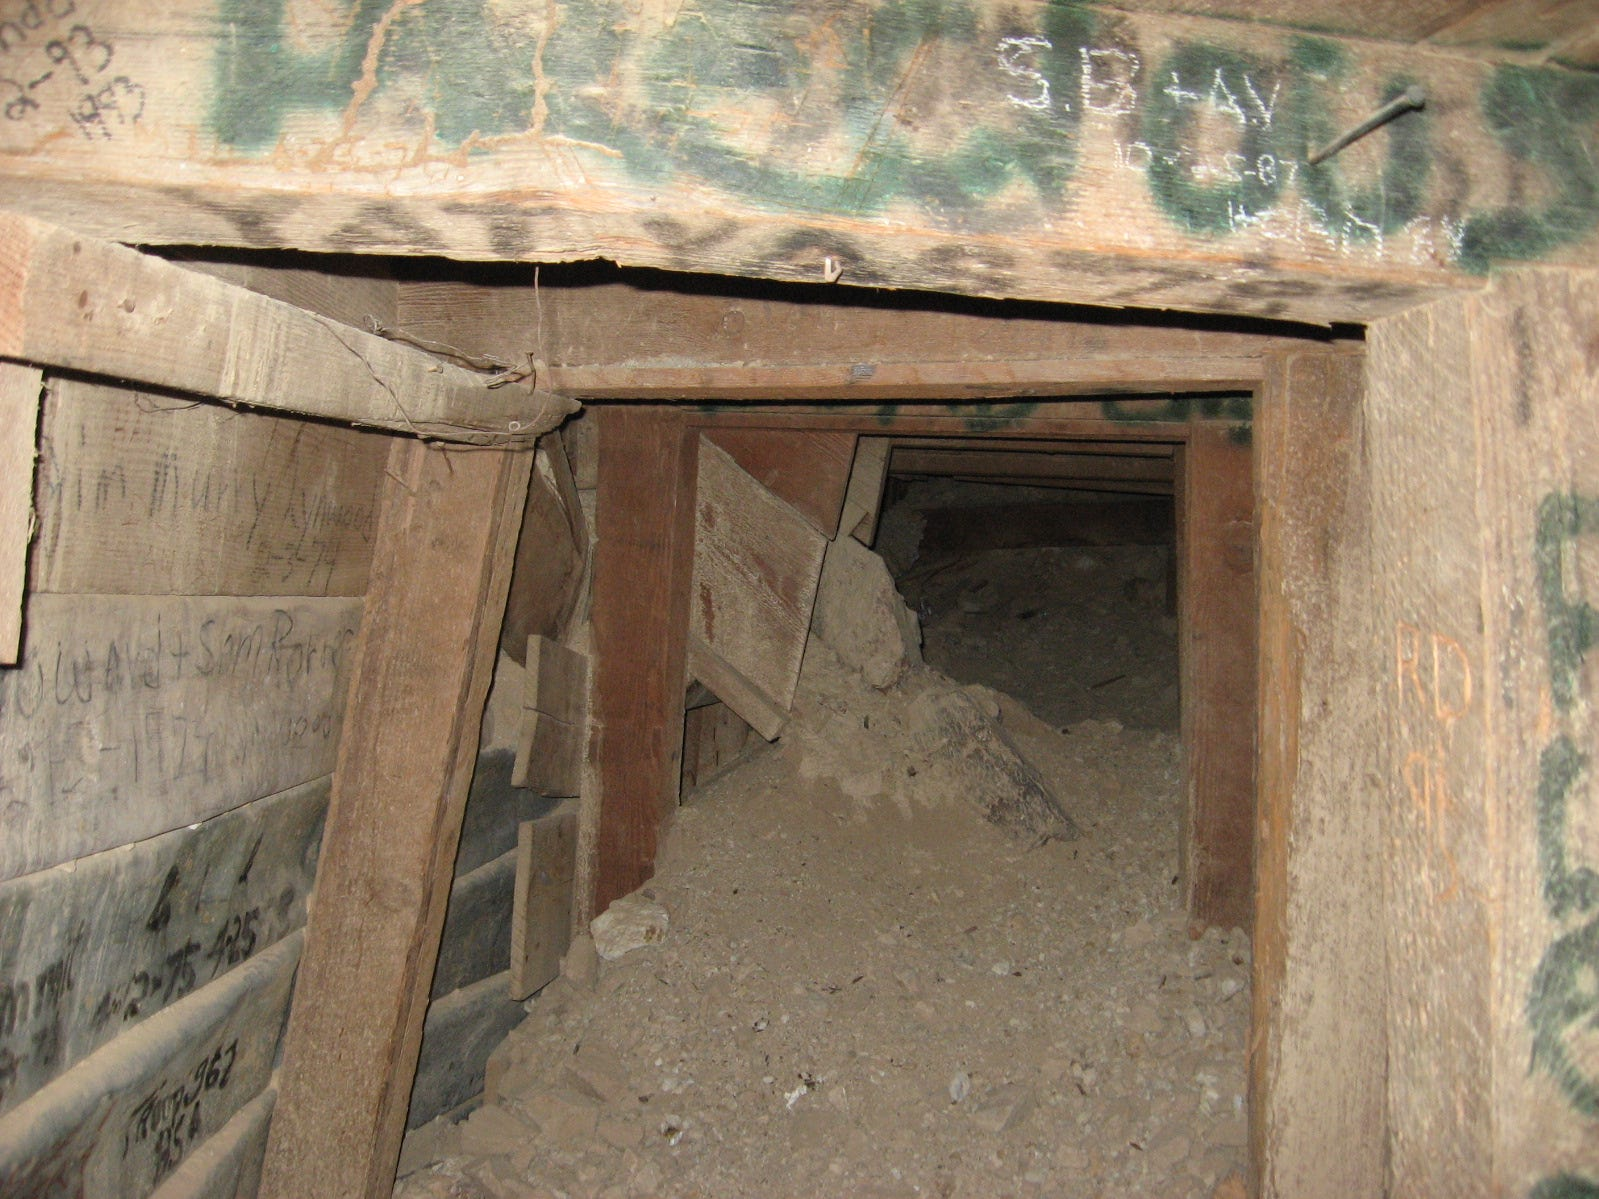 The entrance to one of the abandoned mines at 10297 Gold Crown Road, Wonder Valley